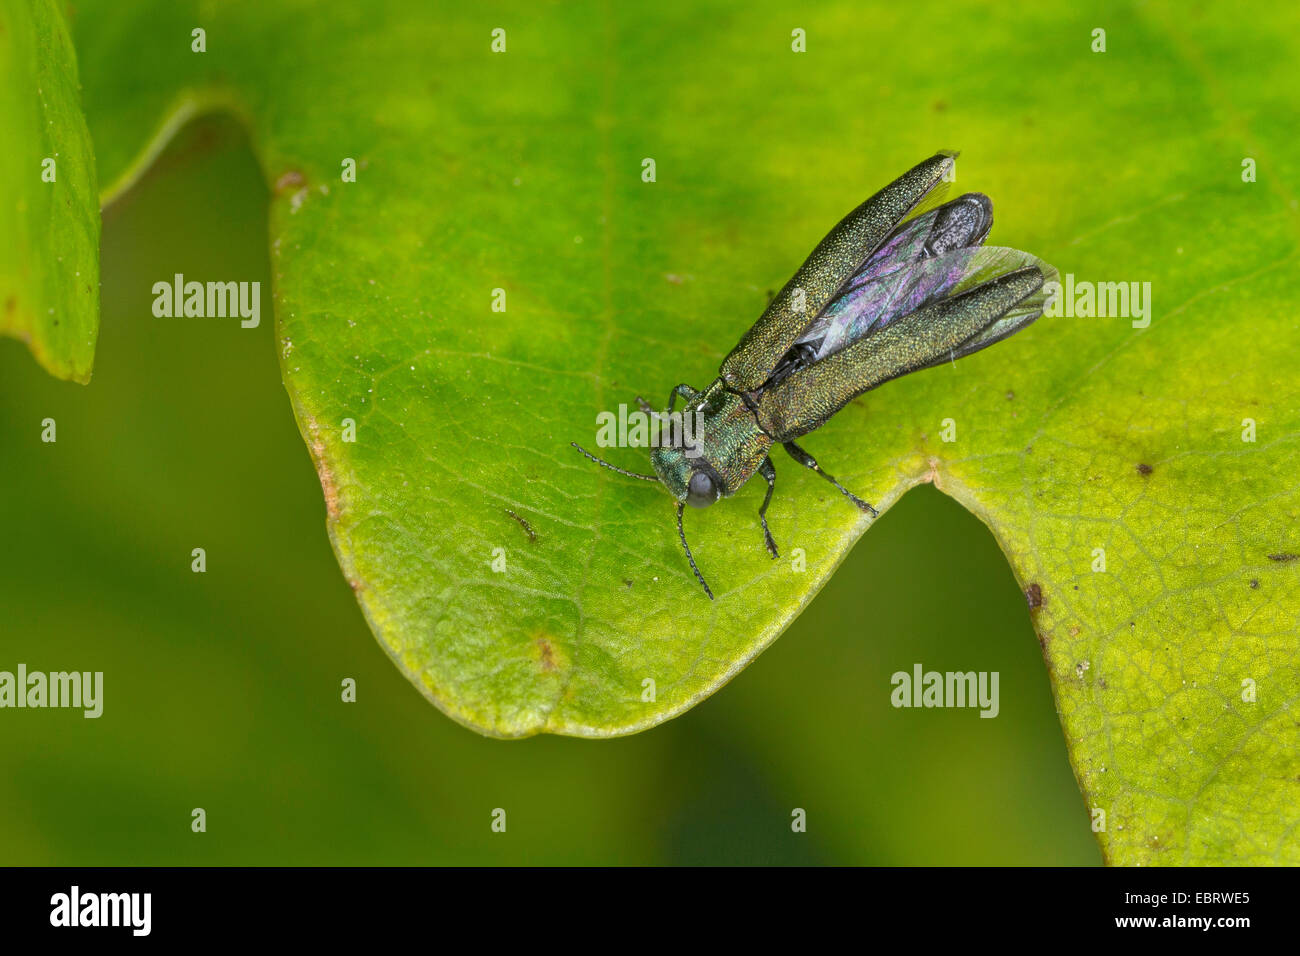 Jewel beetle (Agrilus spec.), sitting in an oak leaf, Germany - Stock Image